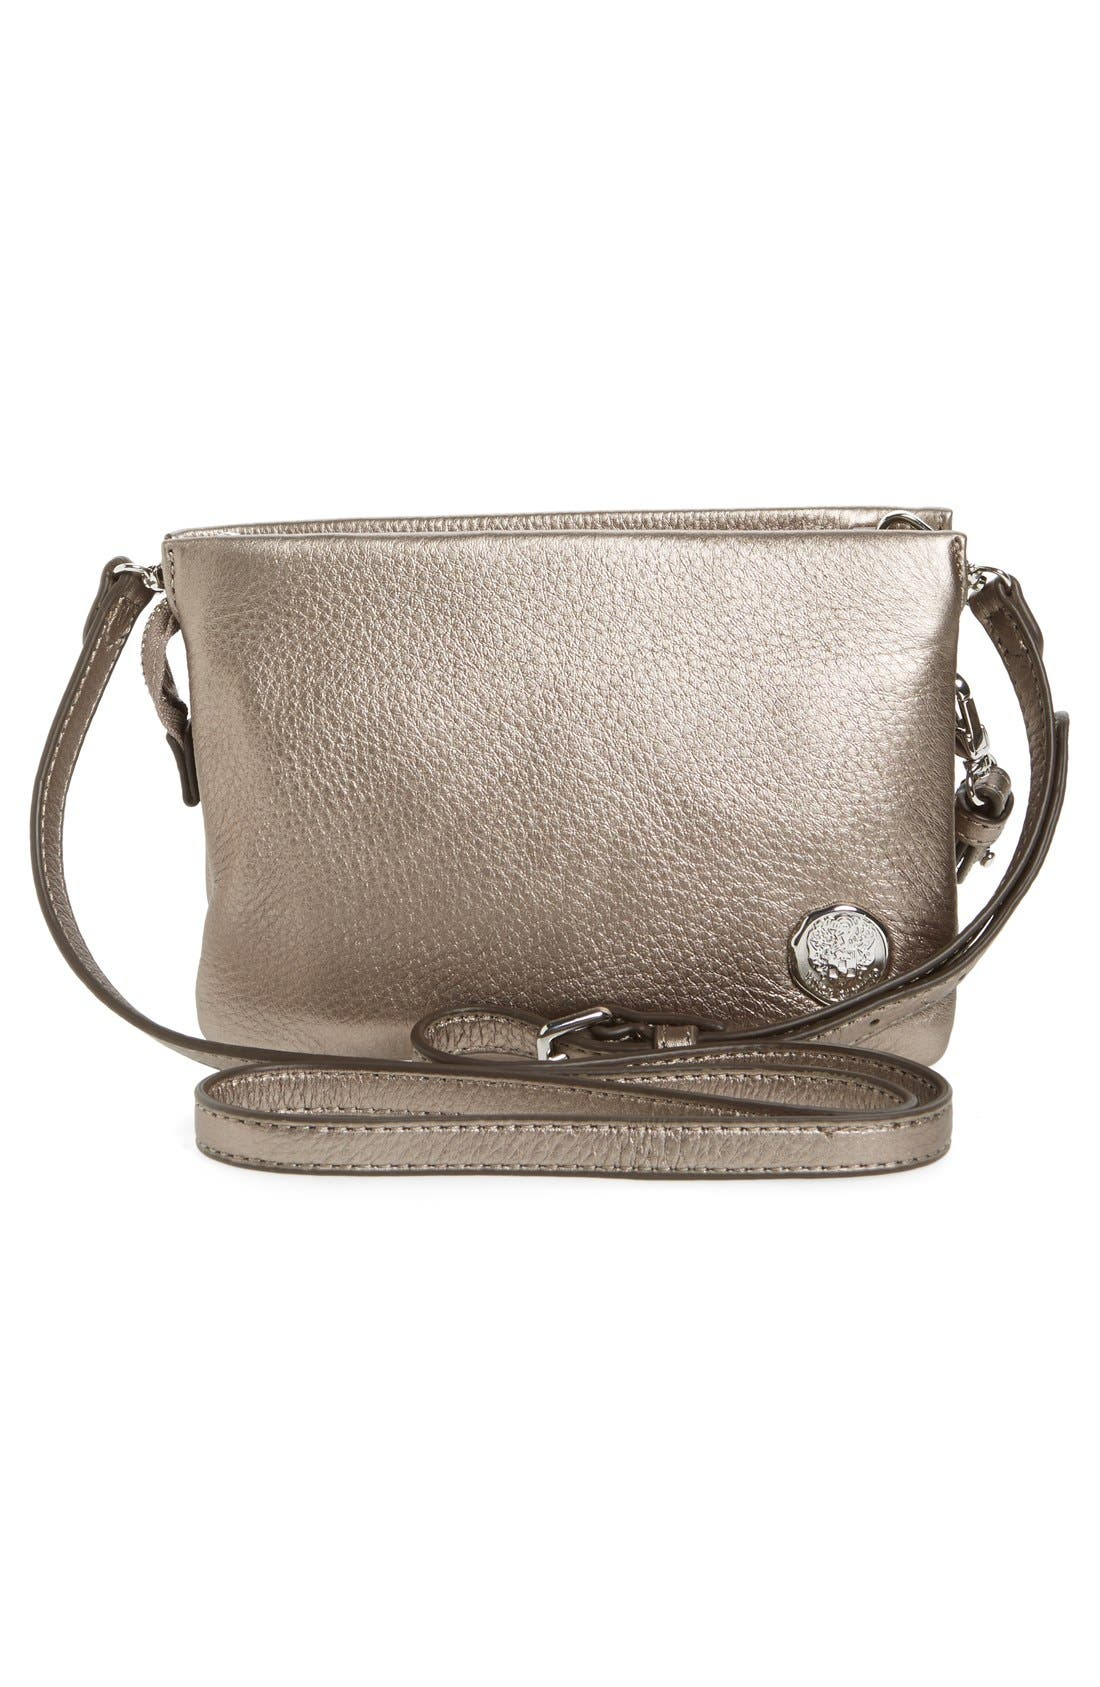 'Cami' Leather Crossbody Bag,                             Alternate thumbnail 97, color,